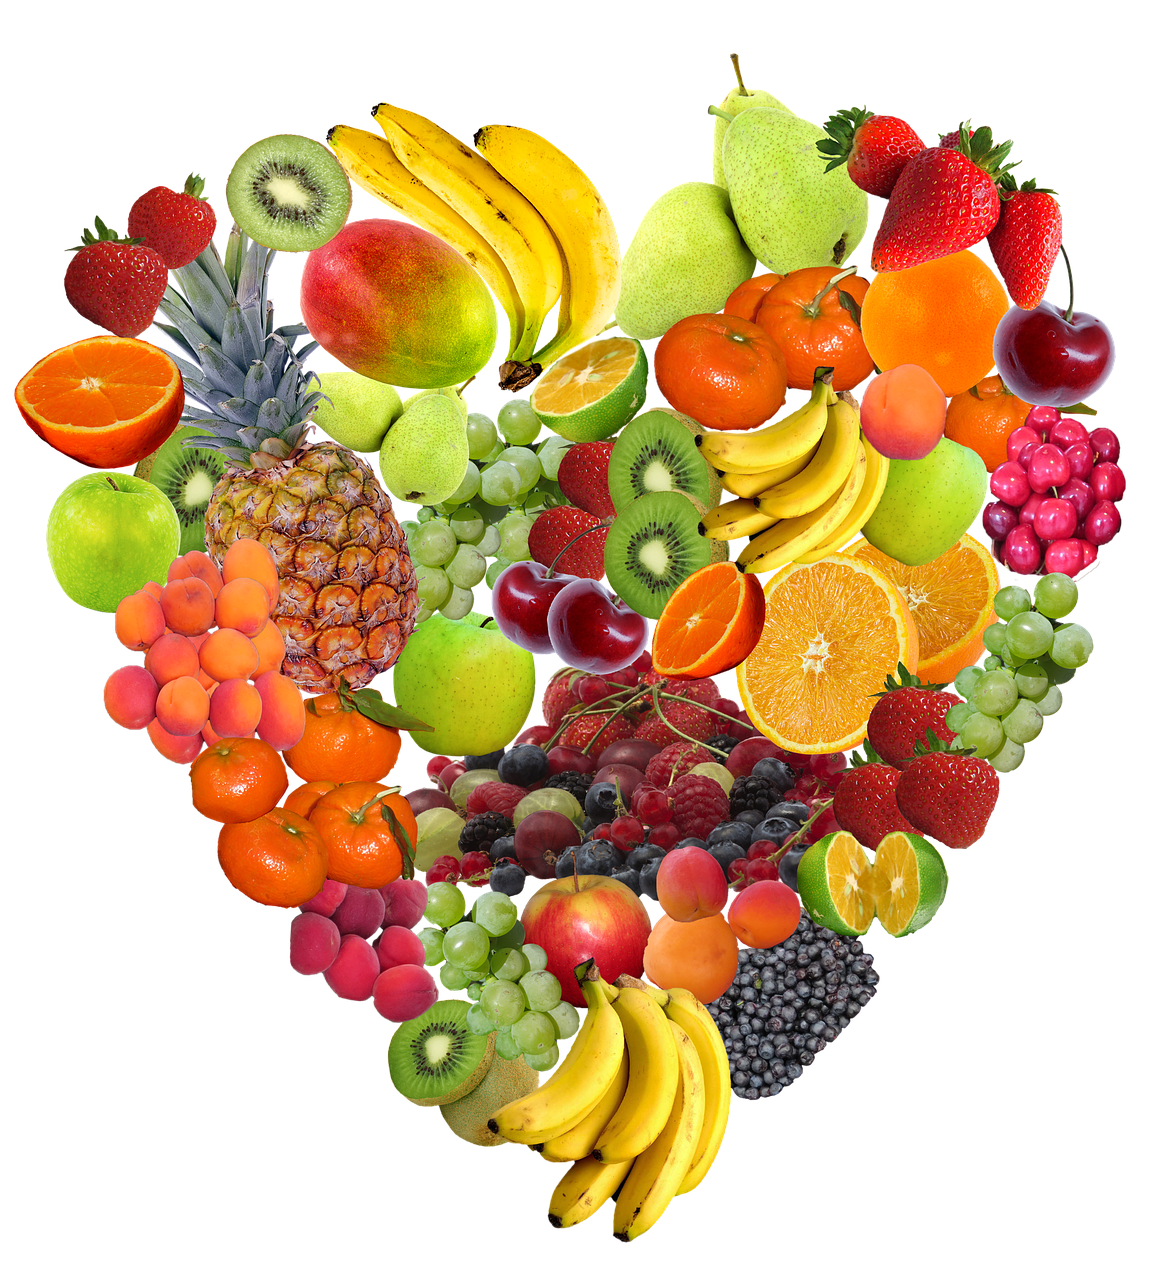 Fruits That Make Your Heart Happy (And Healthy!)